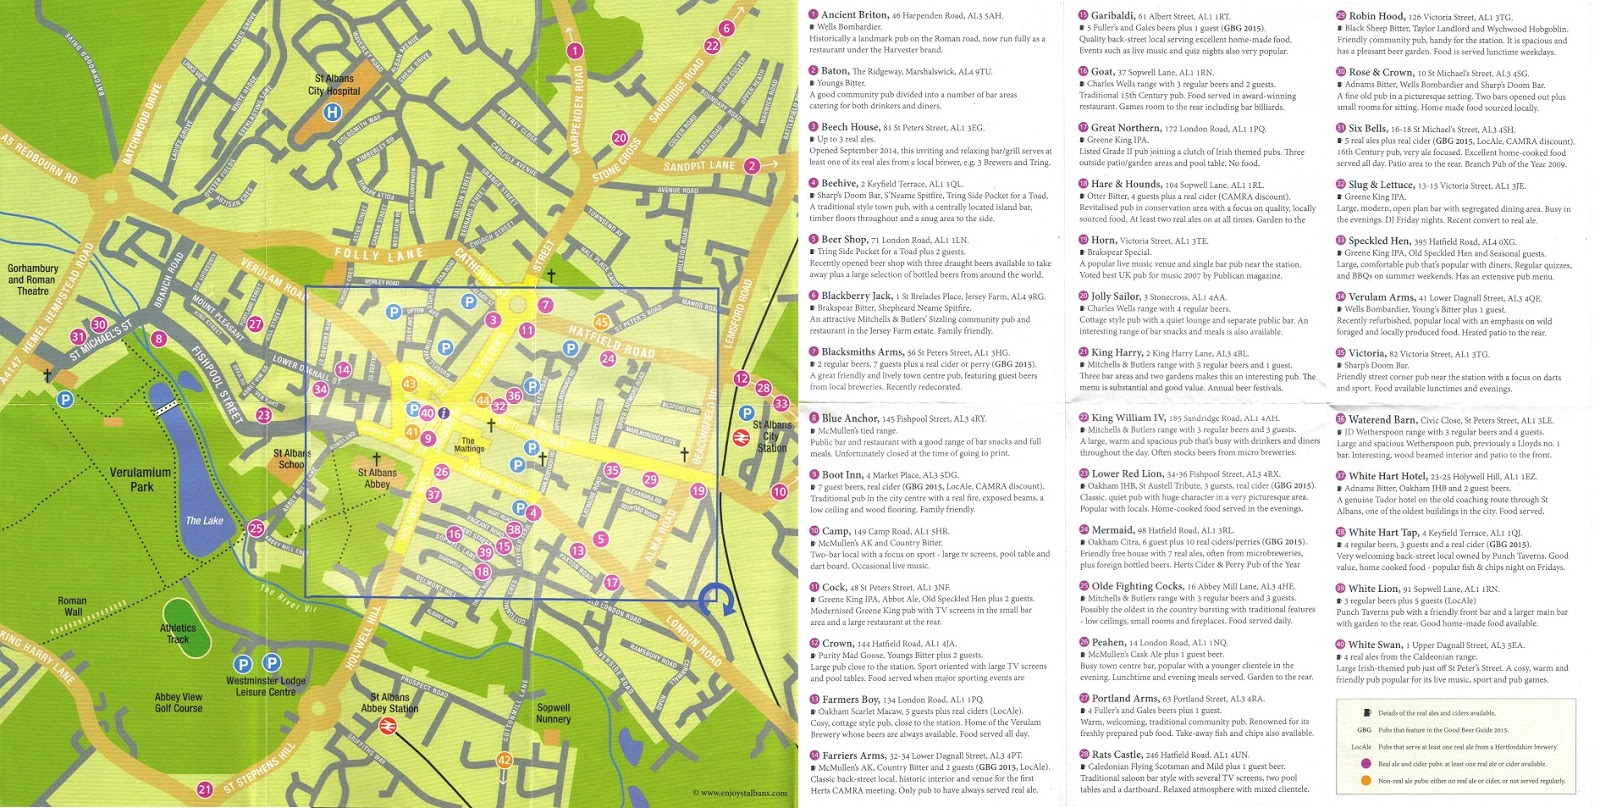 the guide provides an exhaustive listing of local pubs serving real ale and cider as well as information on the various types of beer and cider and the